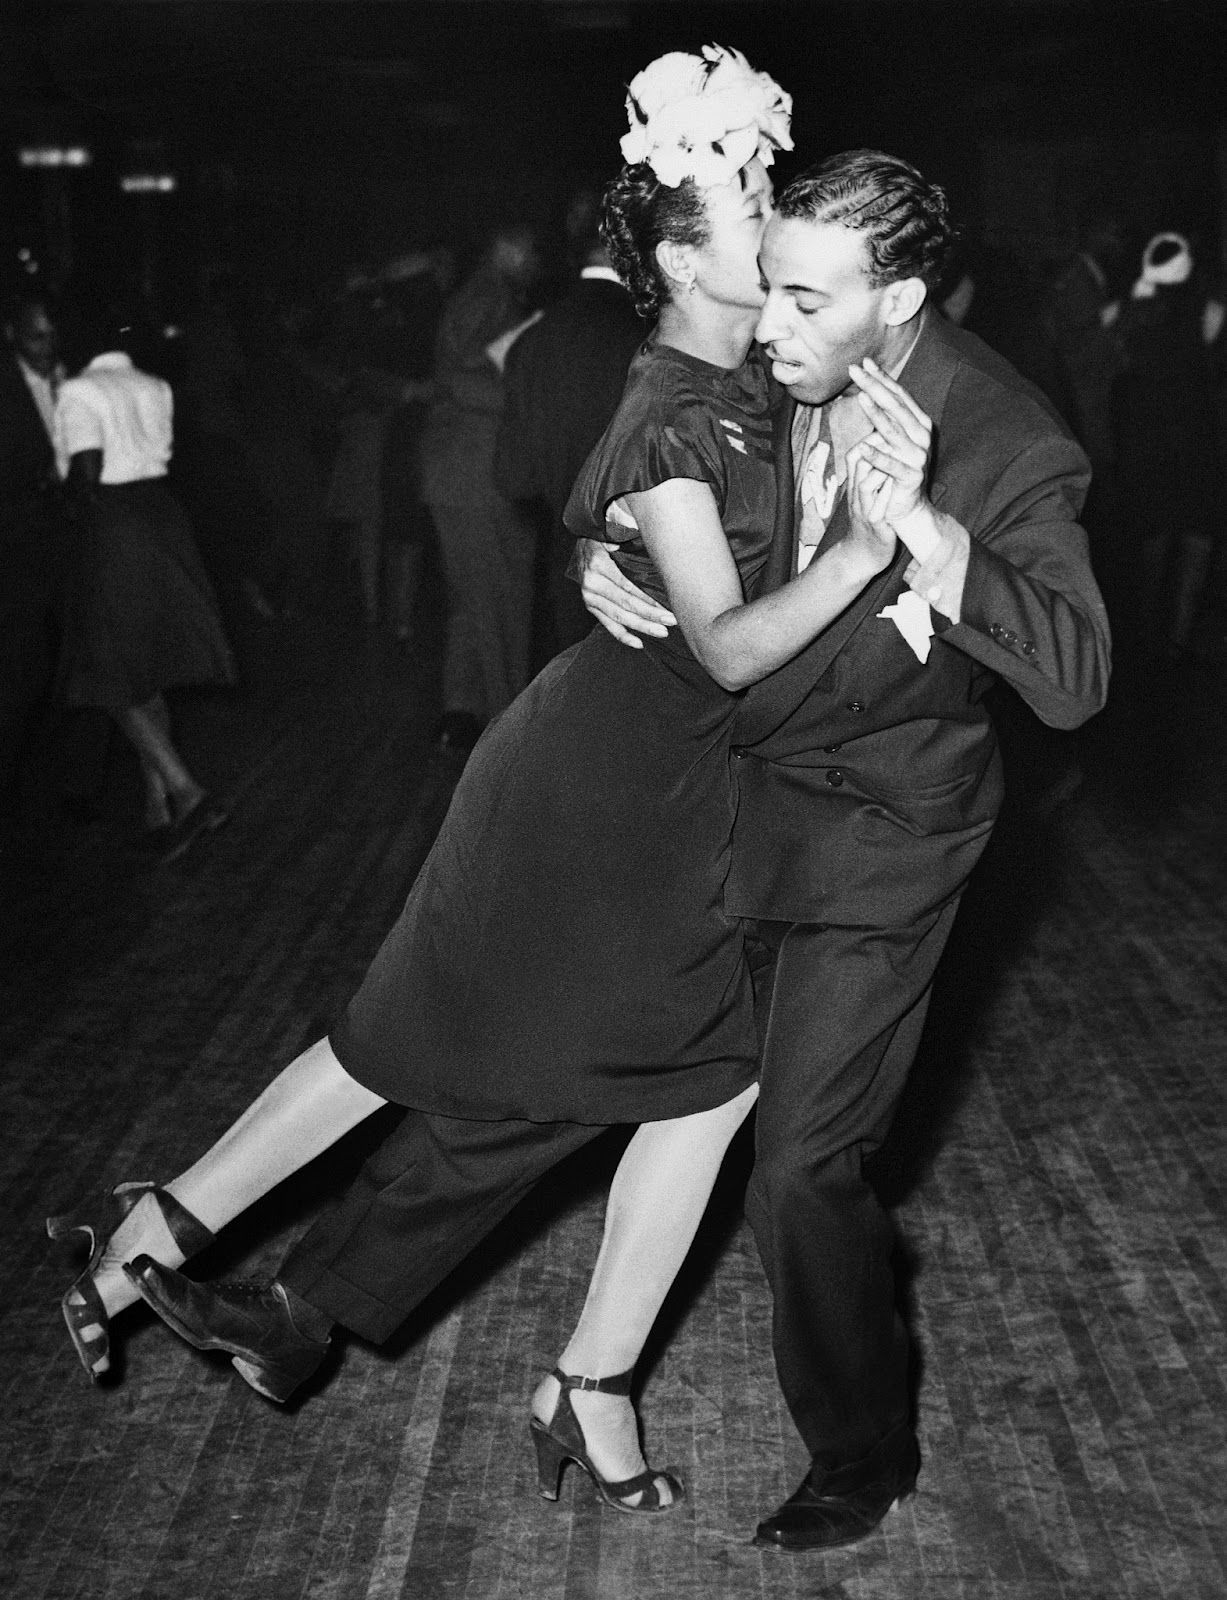 Five 40s Dresses That Capture The Era: Ricky Babbit And Lucy Simms At The Savoy Ballroom In